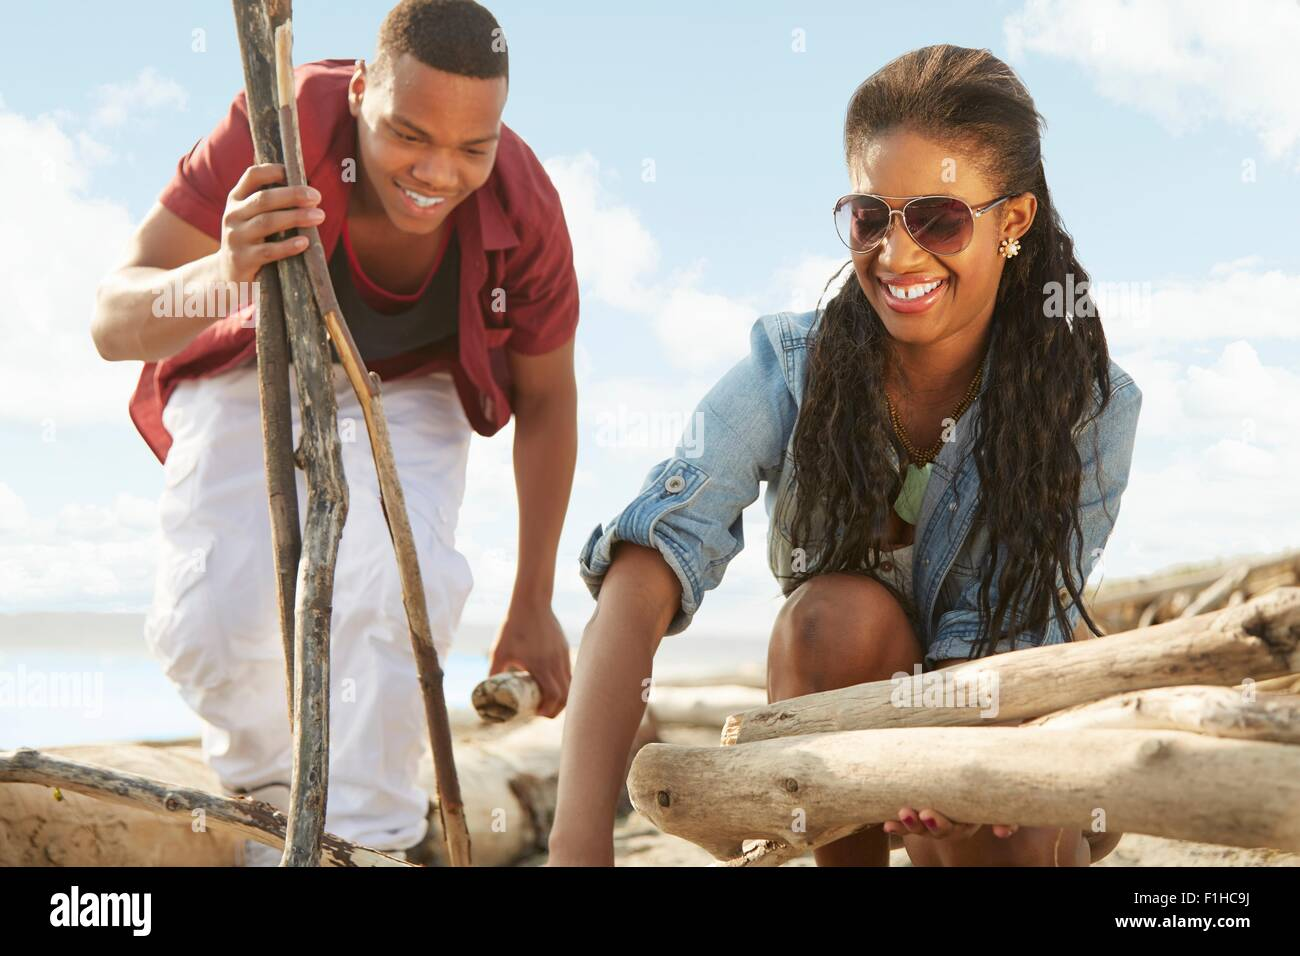 Young couple on beach gathering driftwood together - Stock Image